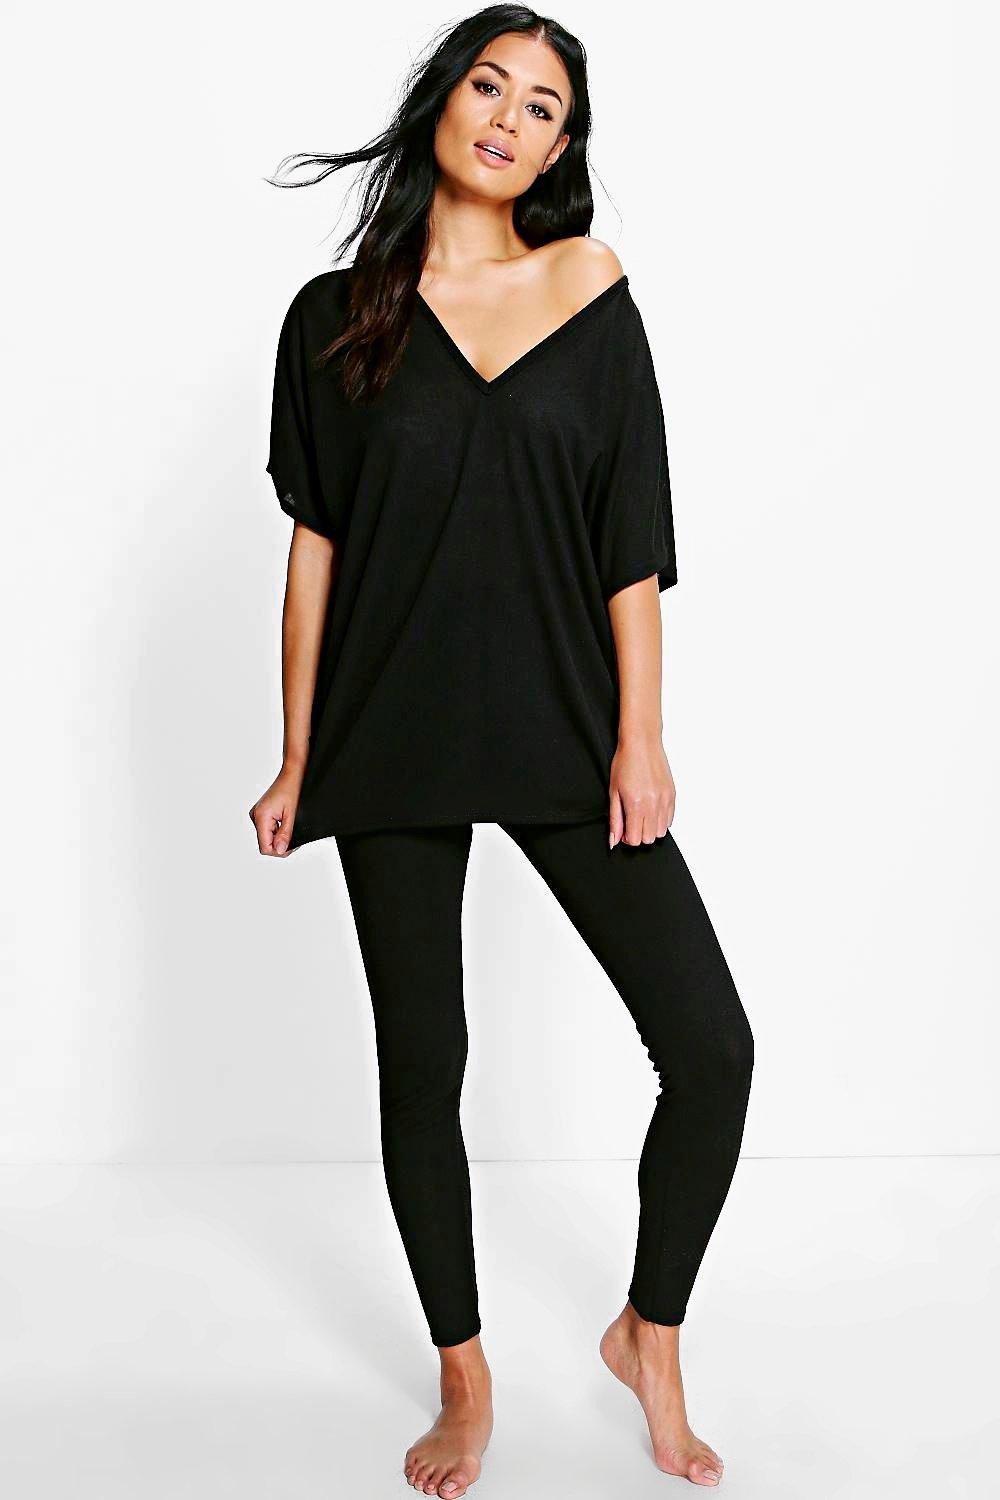 Boohoo Womens Olivia Oversized T-Shirt u0026 Leggings Loungewear | eBay